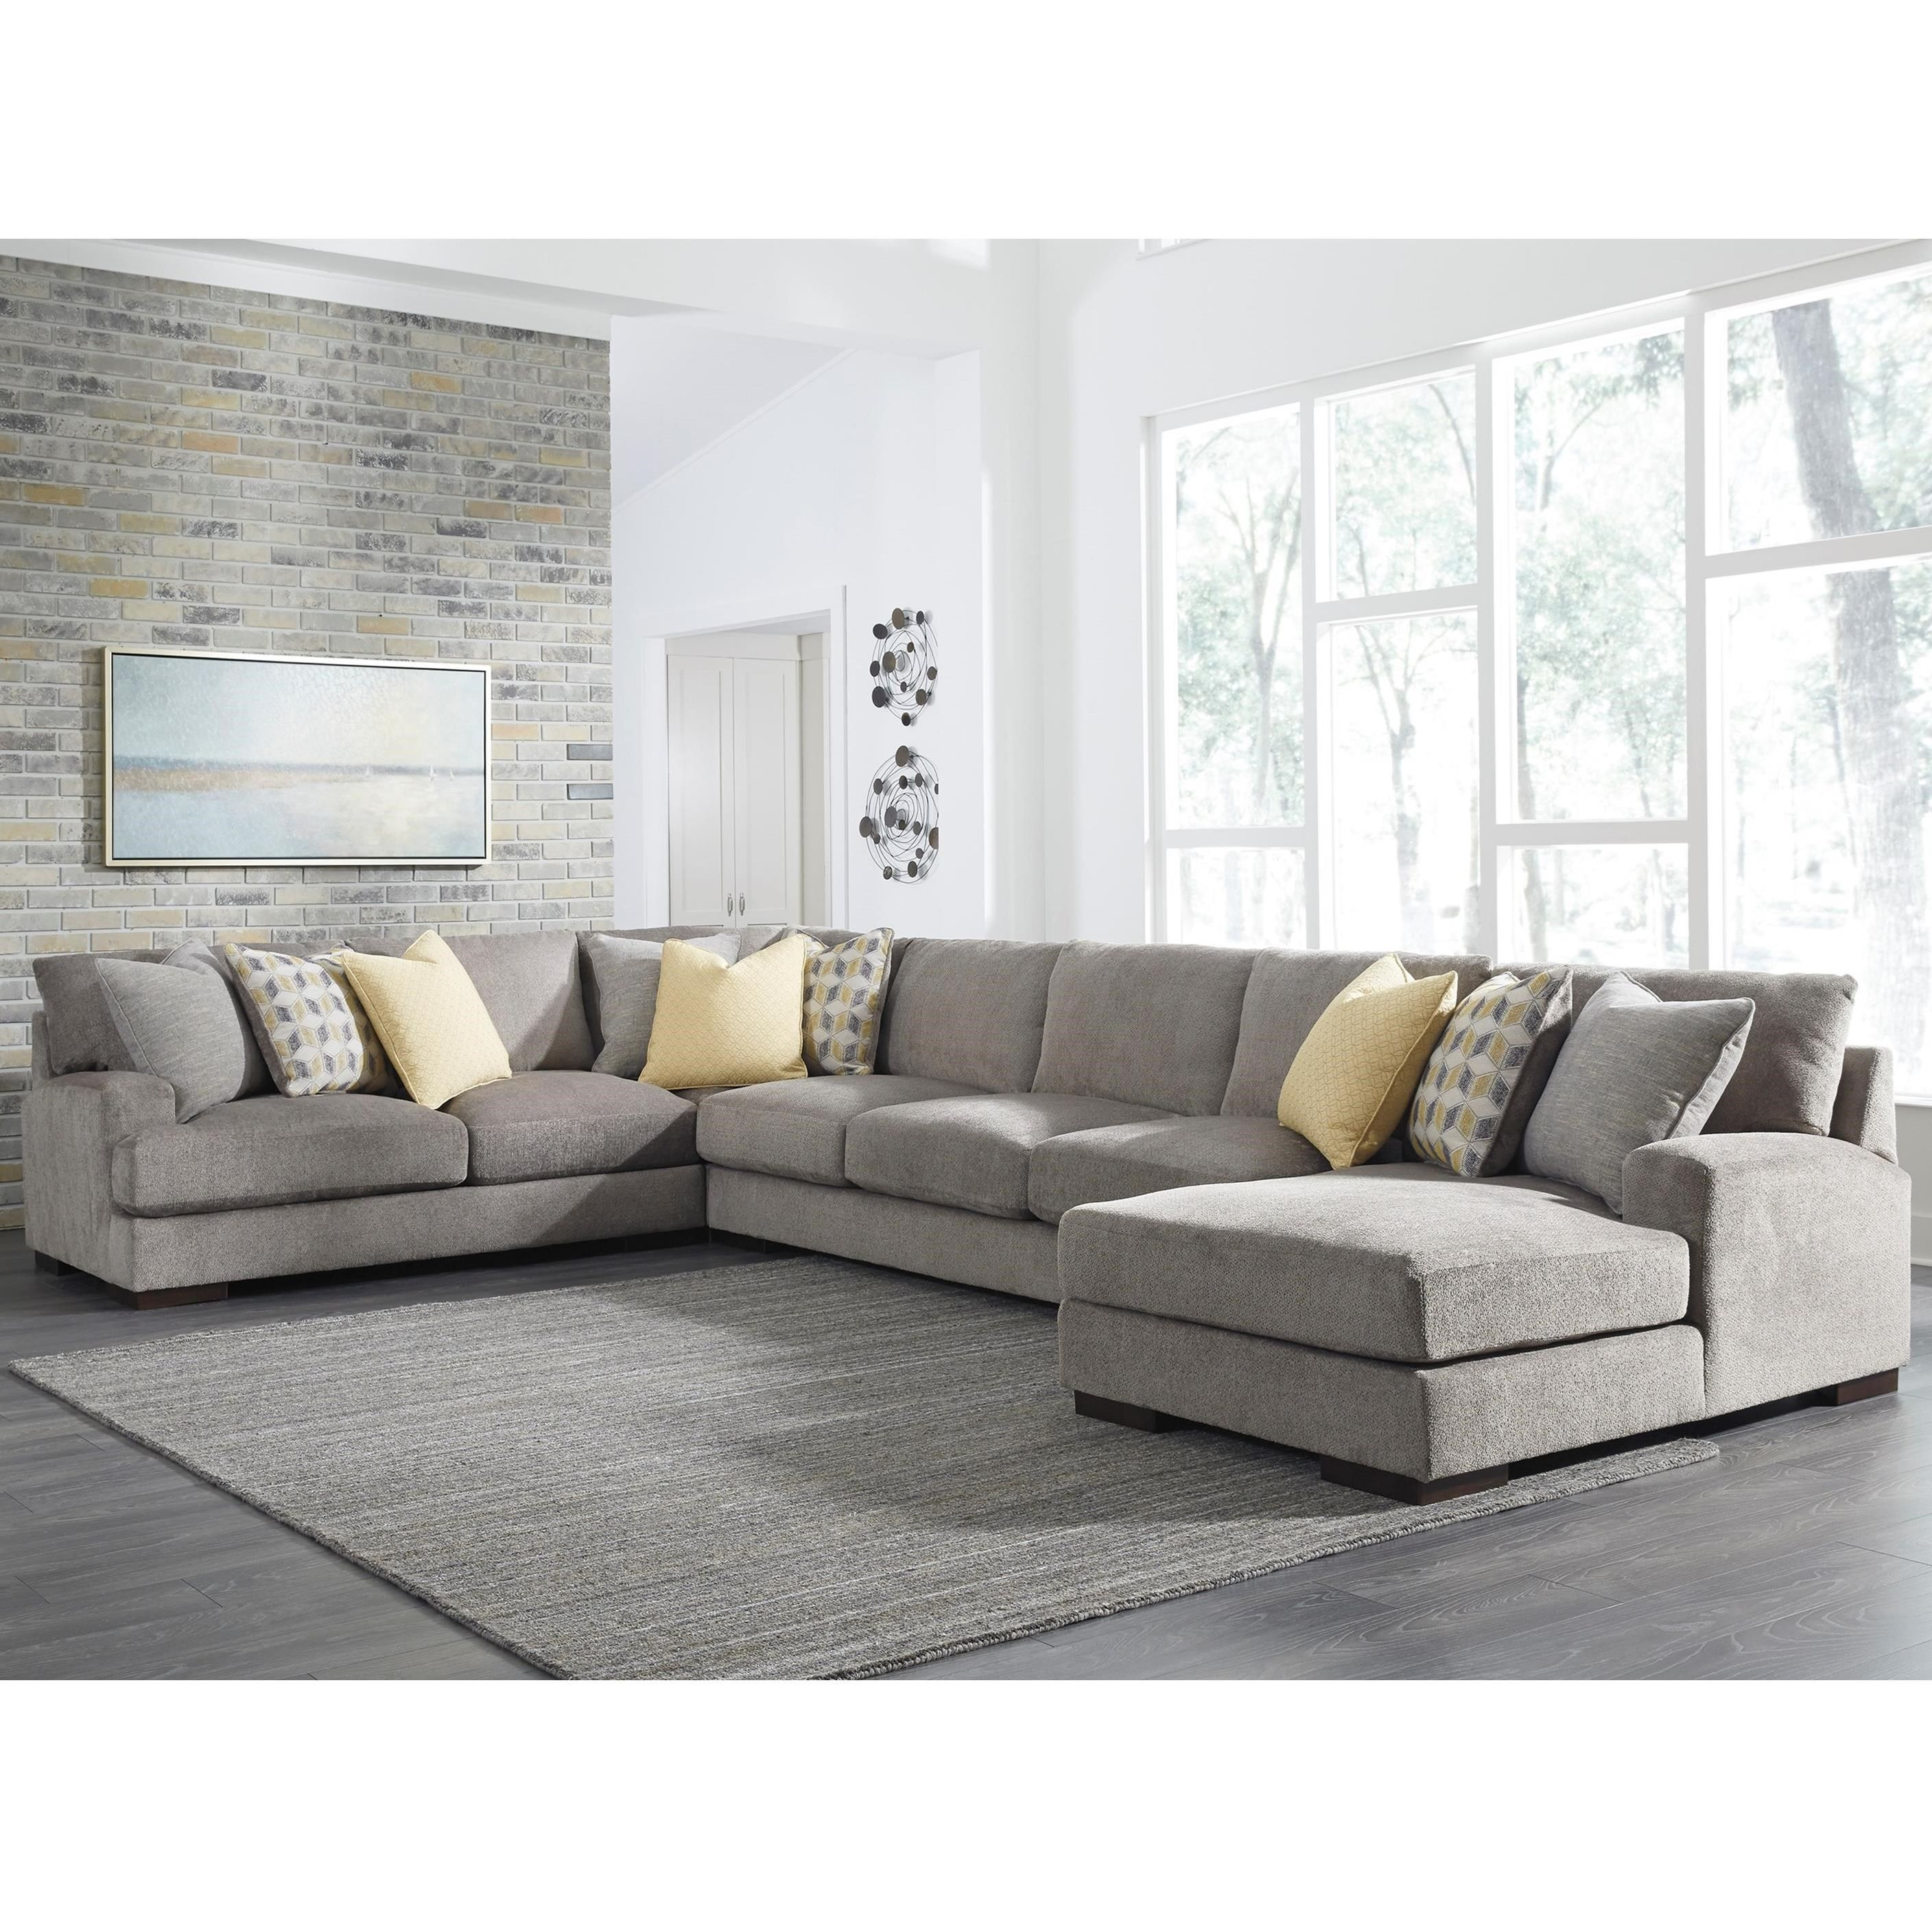 Best Fallsworth 4 Piece Sectional By Benchcraft At Miskelly Furniture Furniture Sectional Sofa 640 x 480